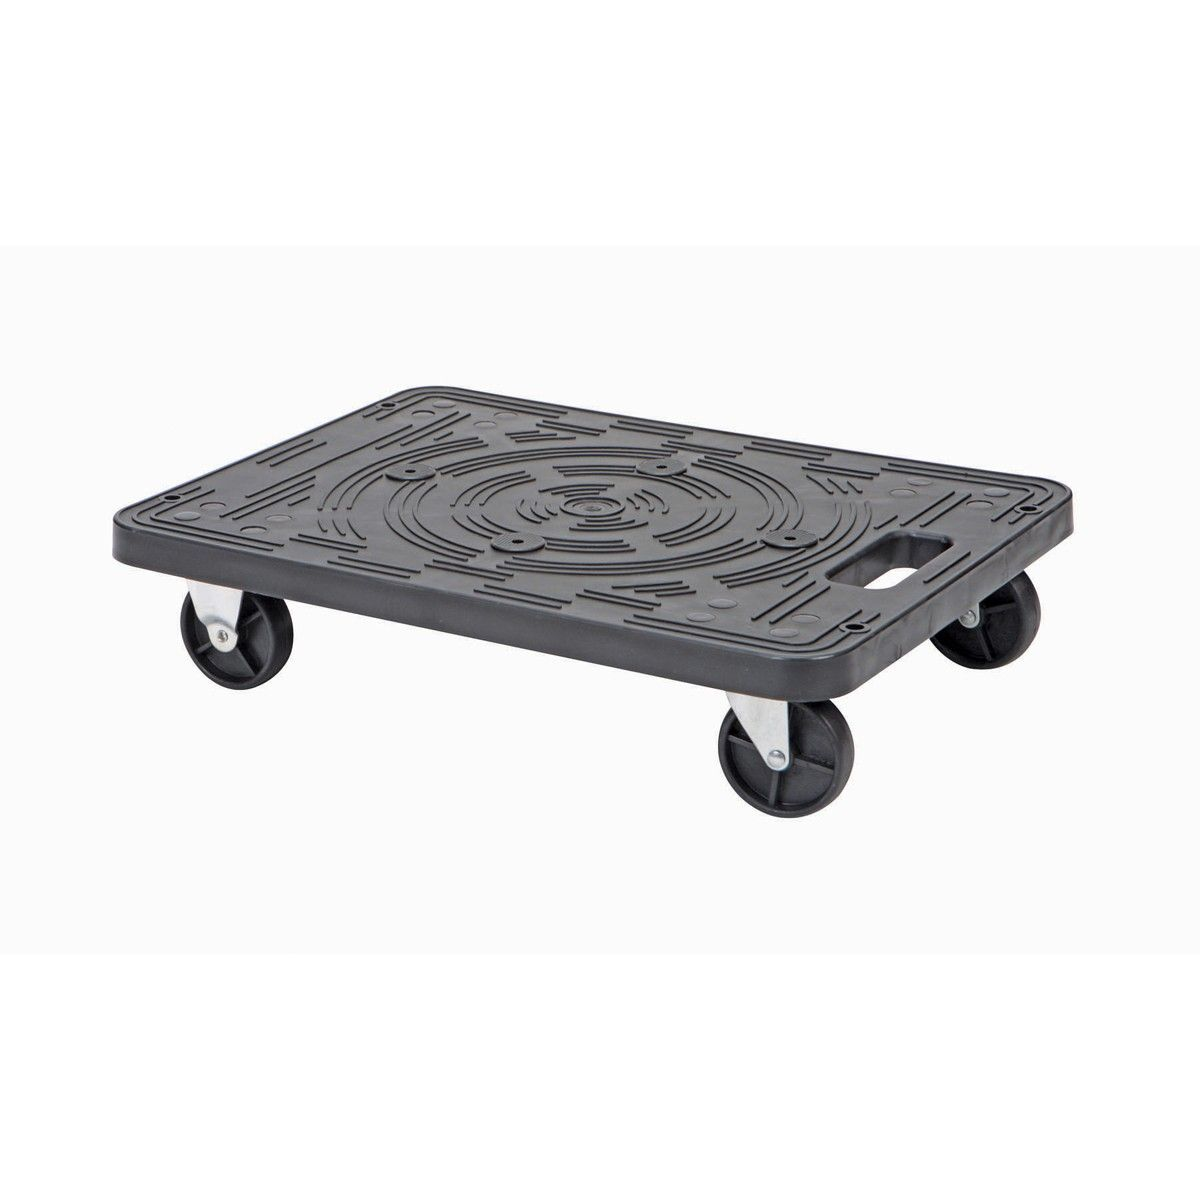 19 1 2 In X 14 1 2 In 200 Lbs Capacity Polypropylene Dolly